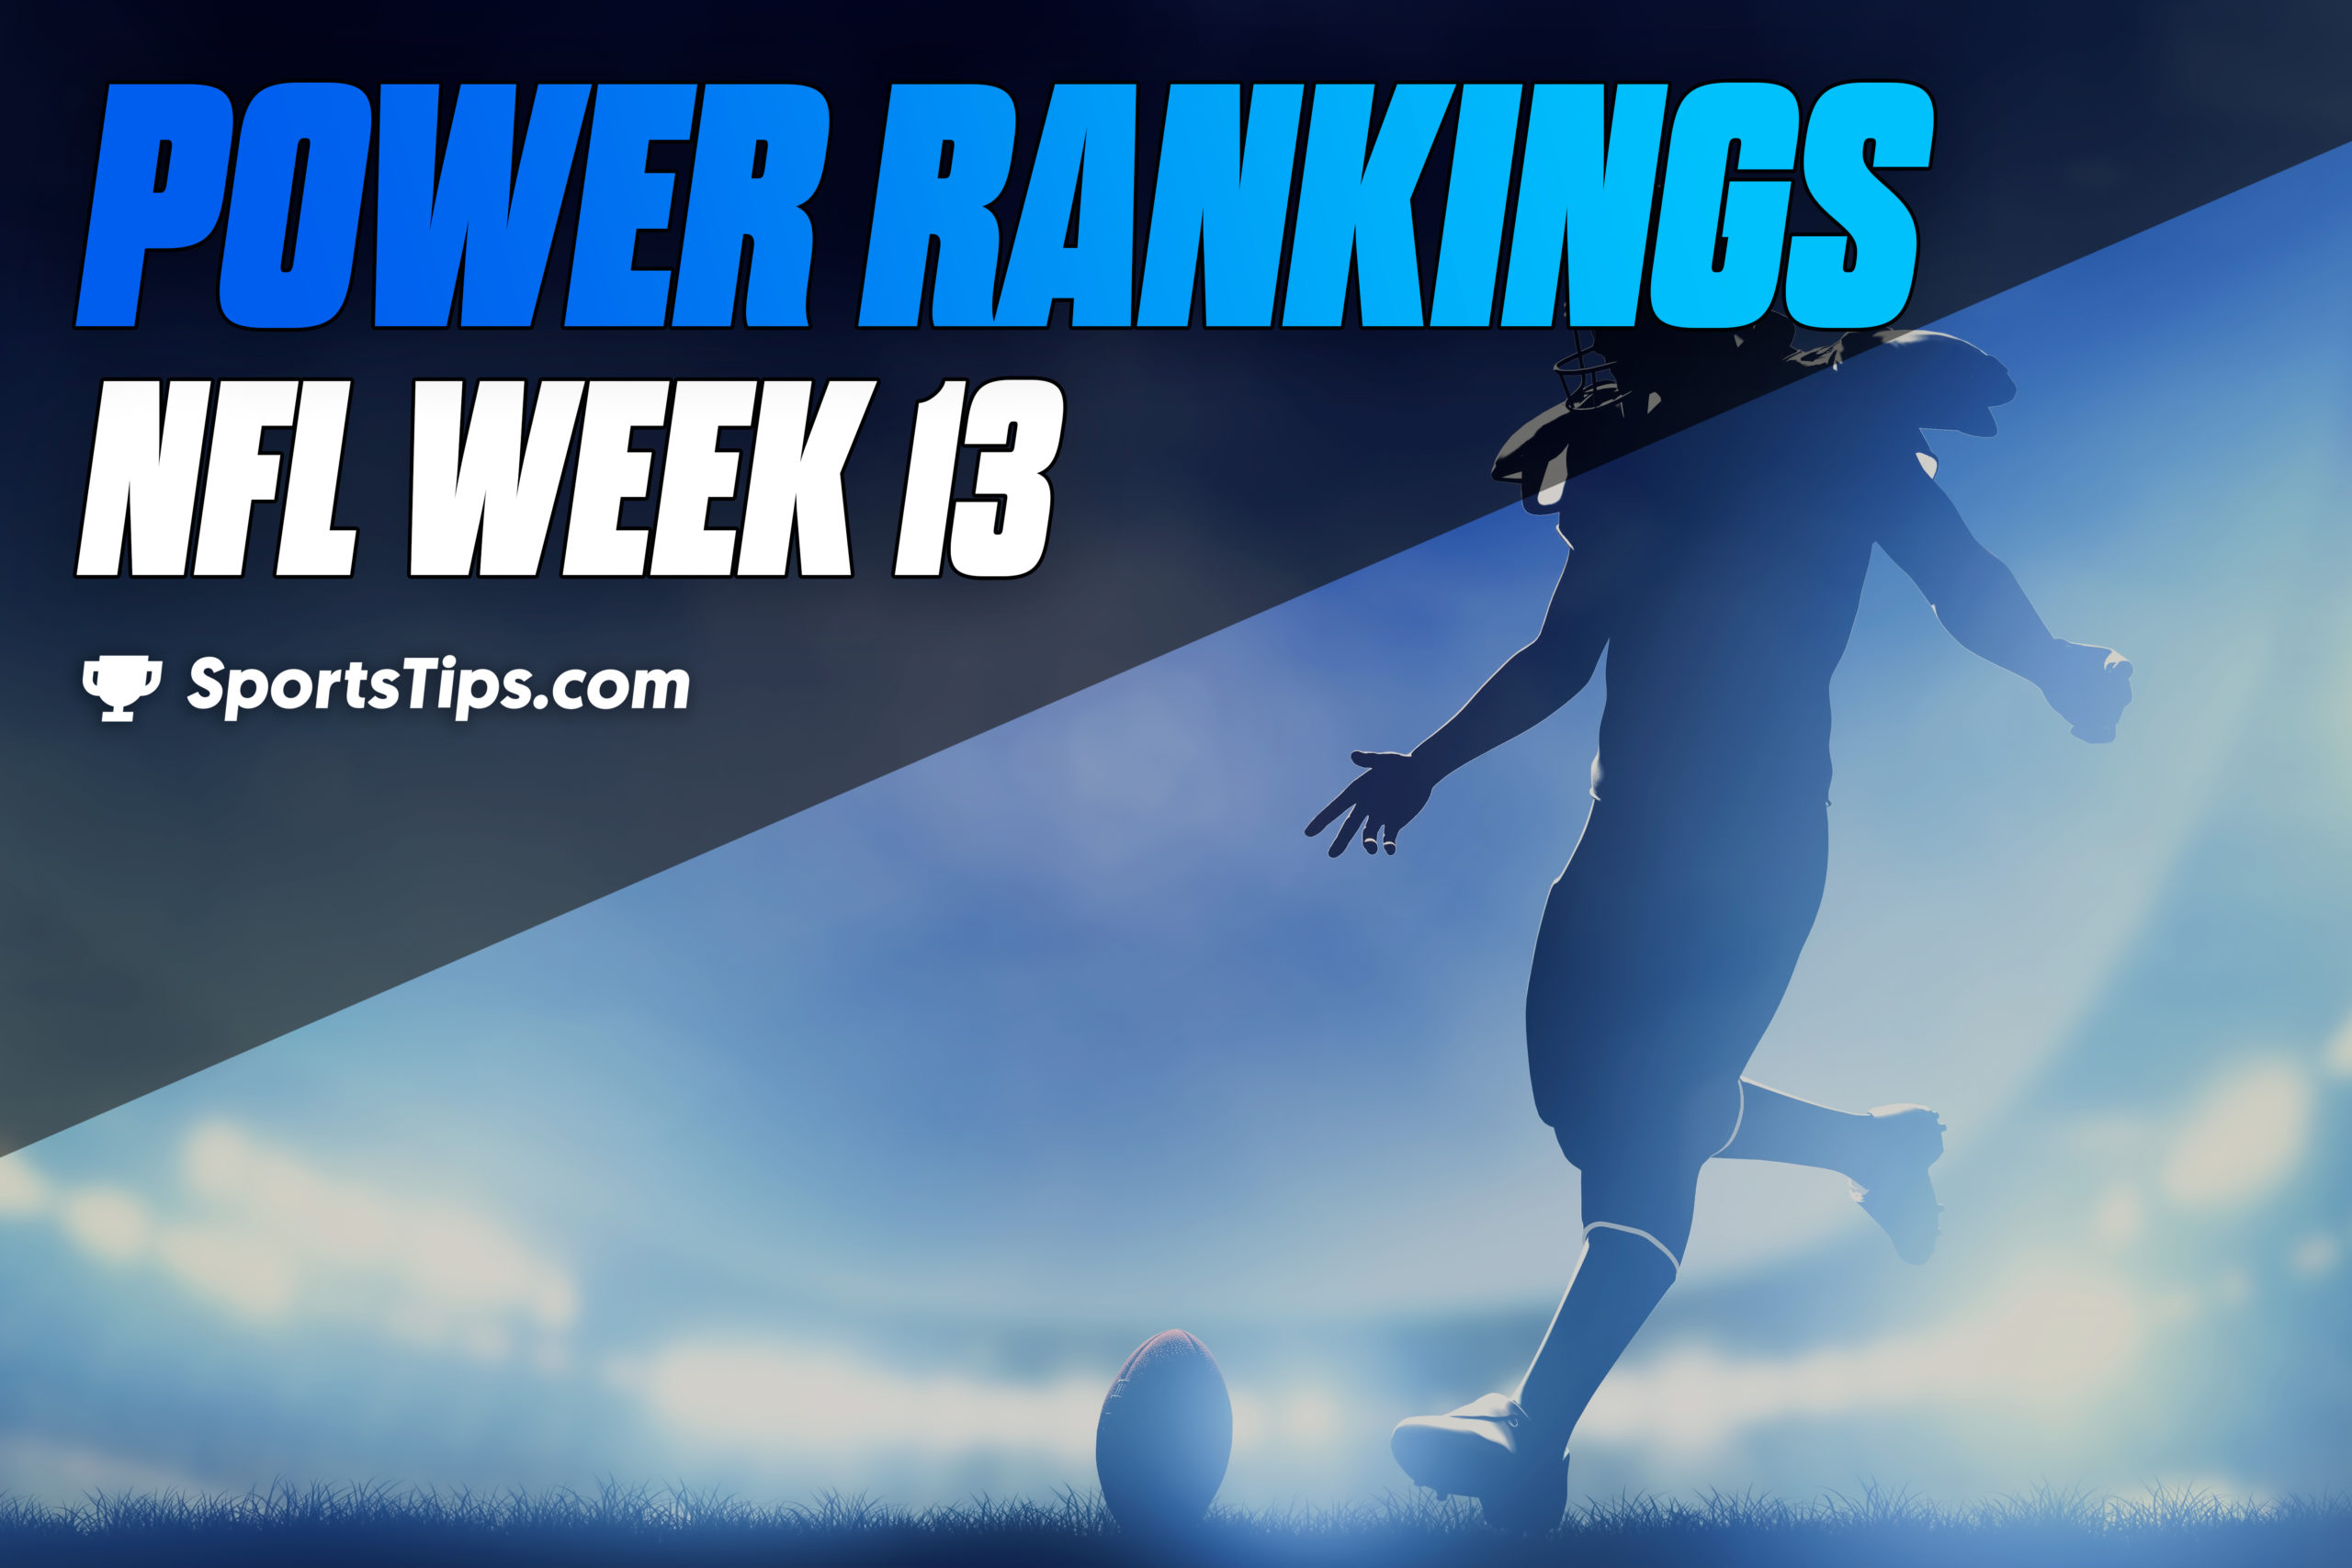 SportsTips' NFL Power Rankings: Week 13